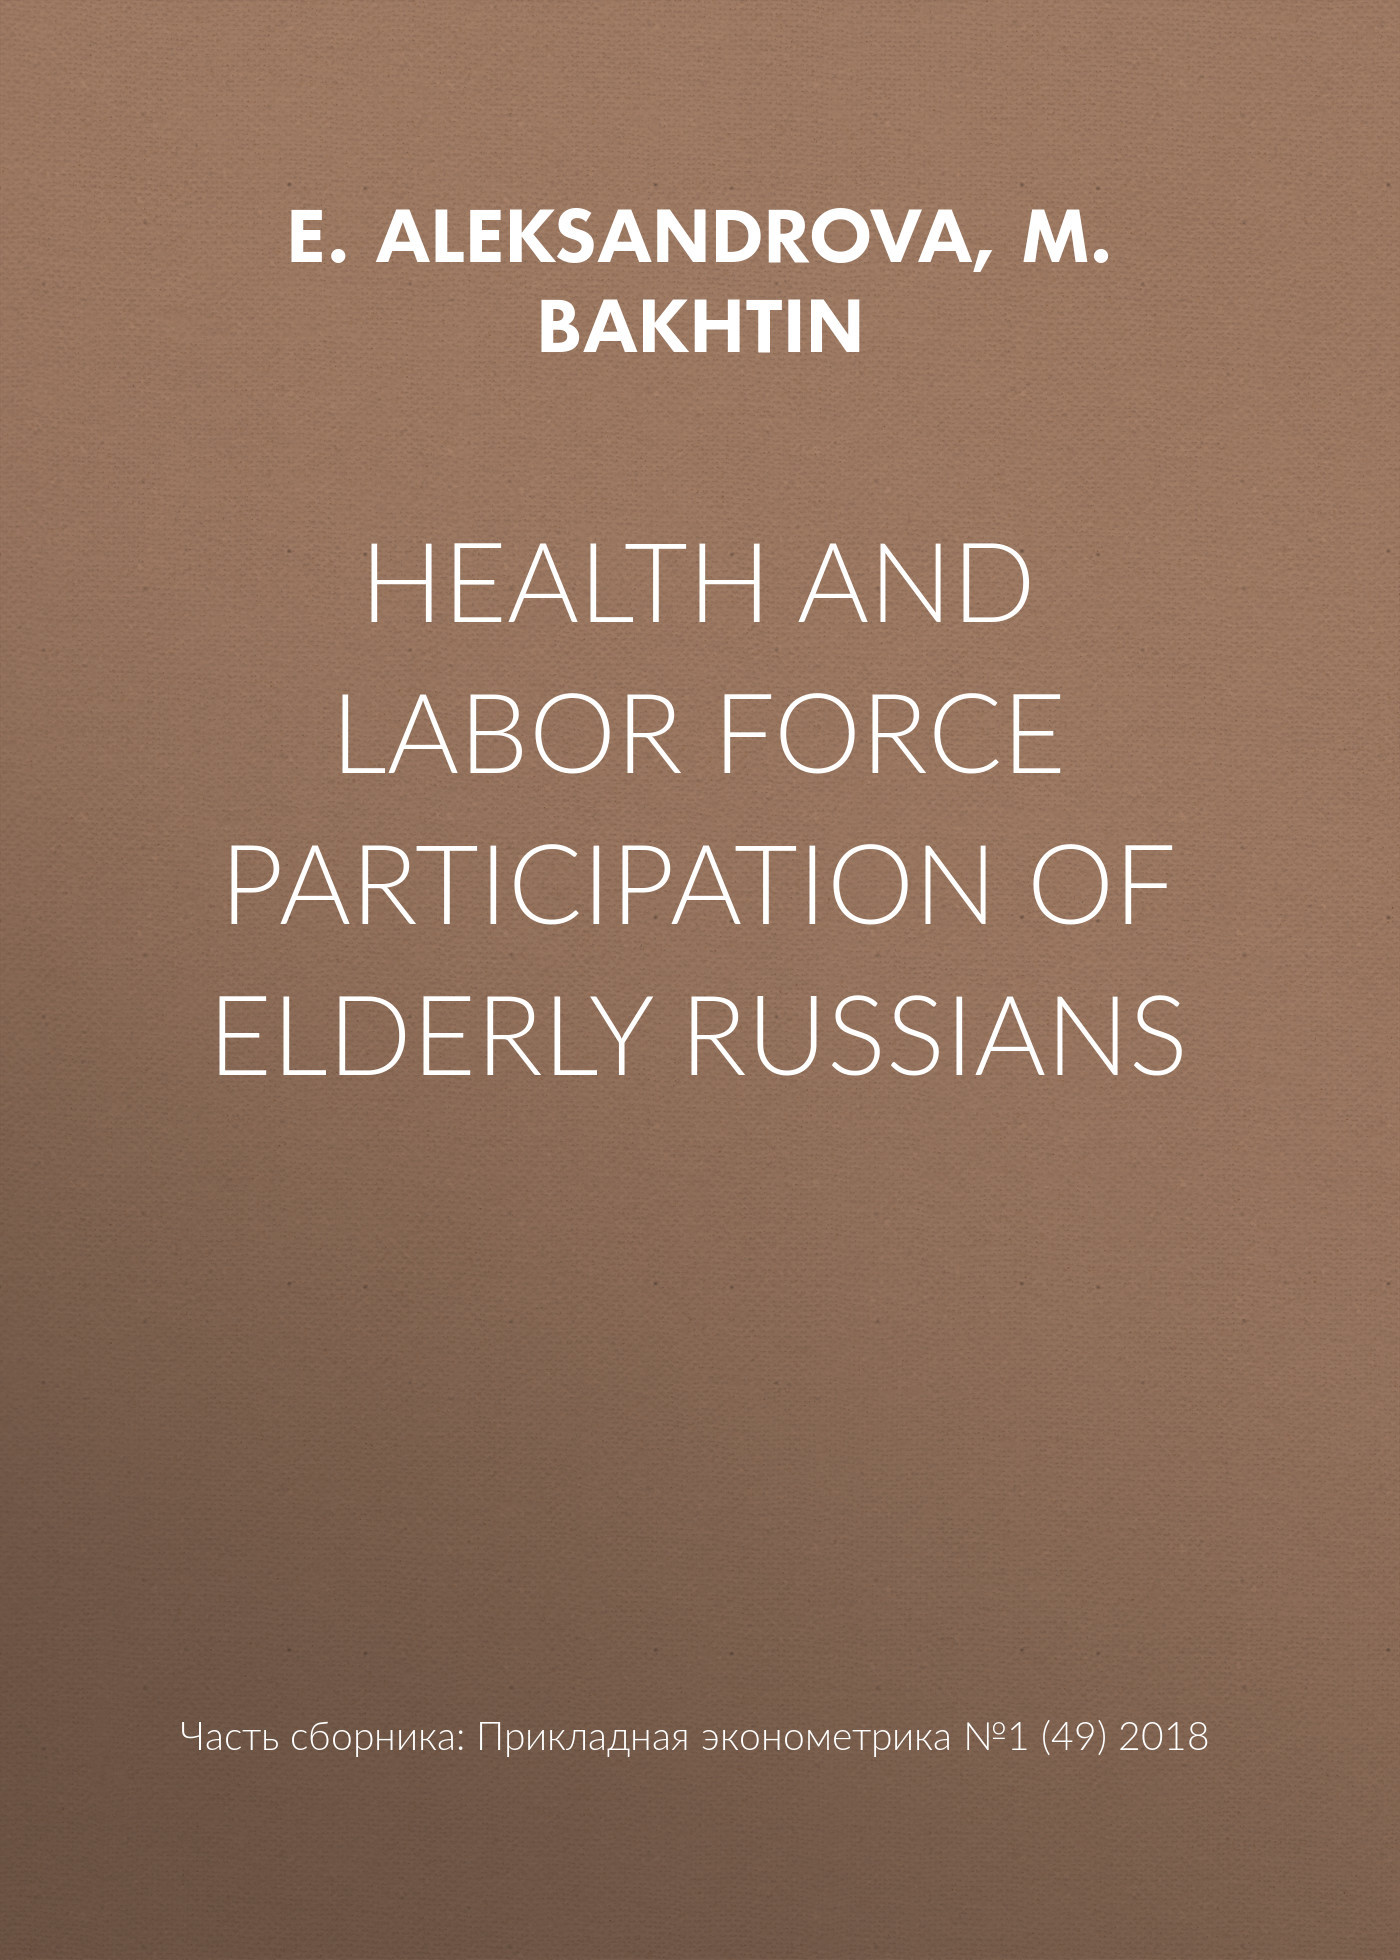 E. Aleksandrova Health and labor force participation of elderly Russians sophie hill the knowledgeable patient communication and participation in health